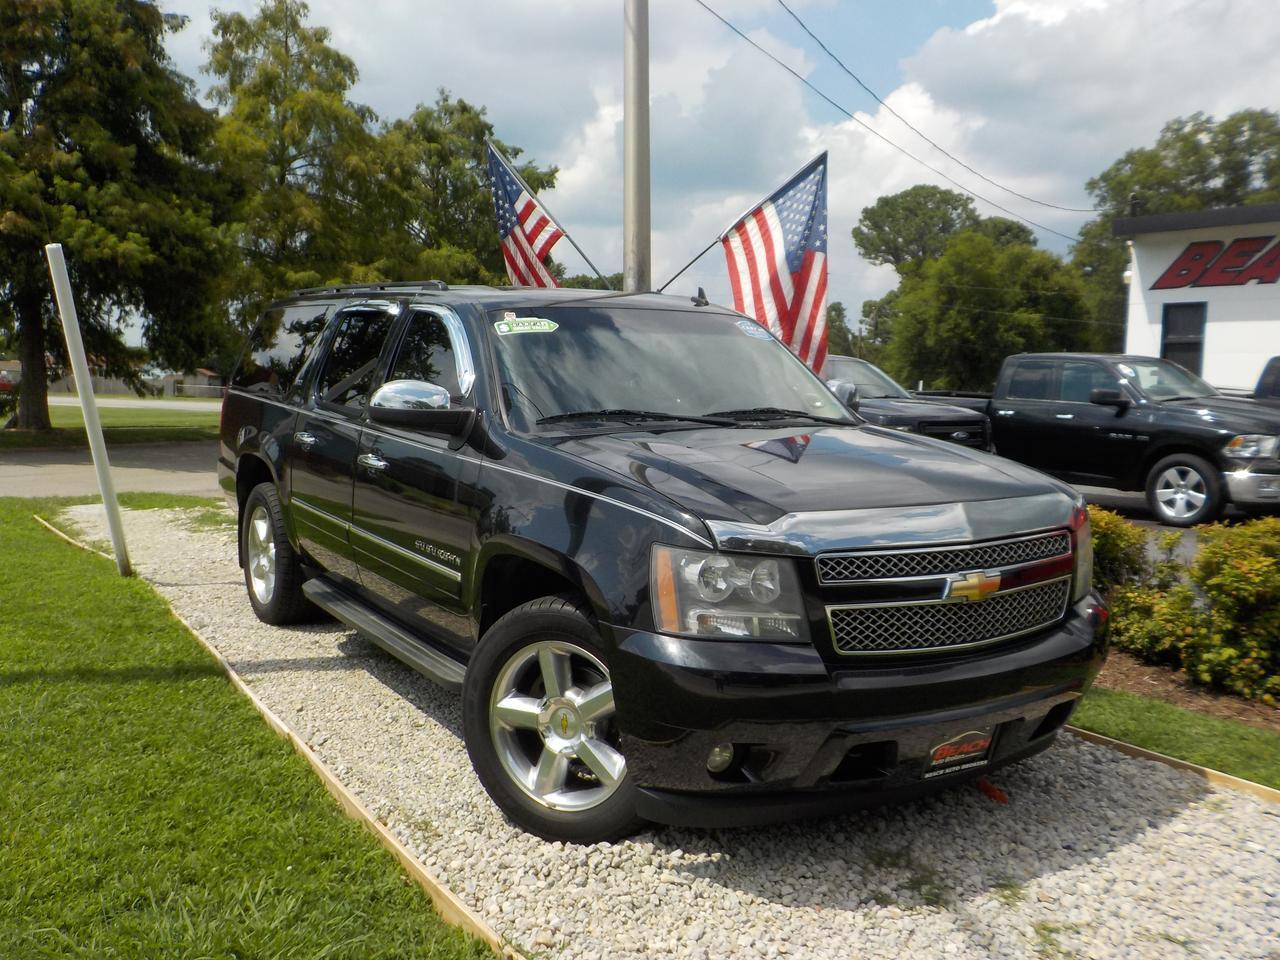 2010 Chevrolet Suburban Ltz 4x4 Warranty Leather Nav Backup Cam Parking Sensors Sirius Radio Heated Cooled Seats